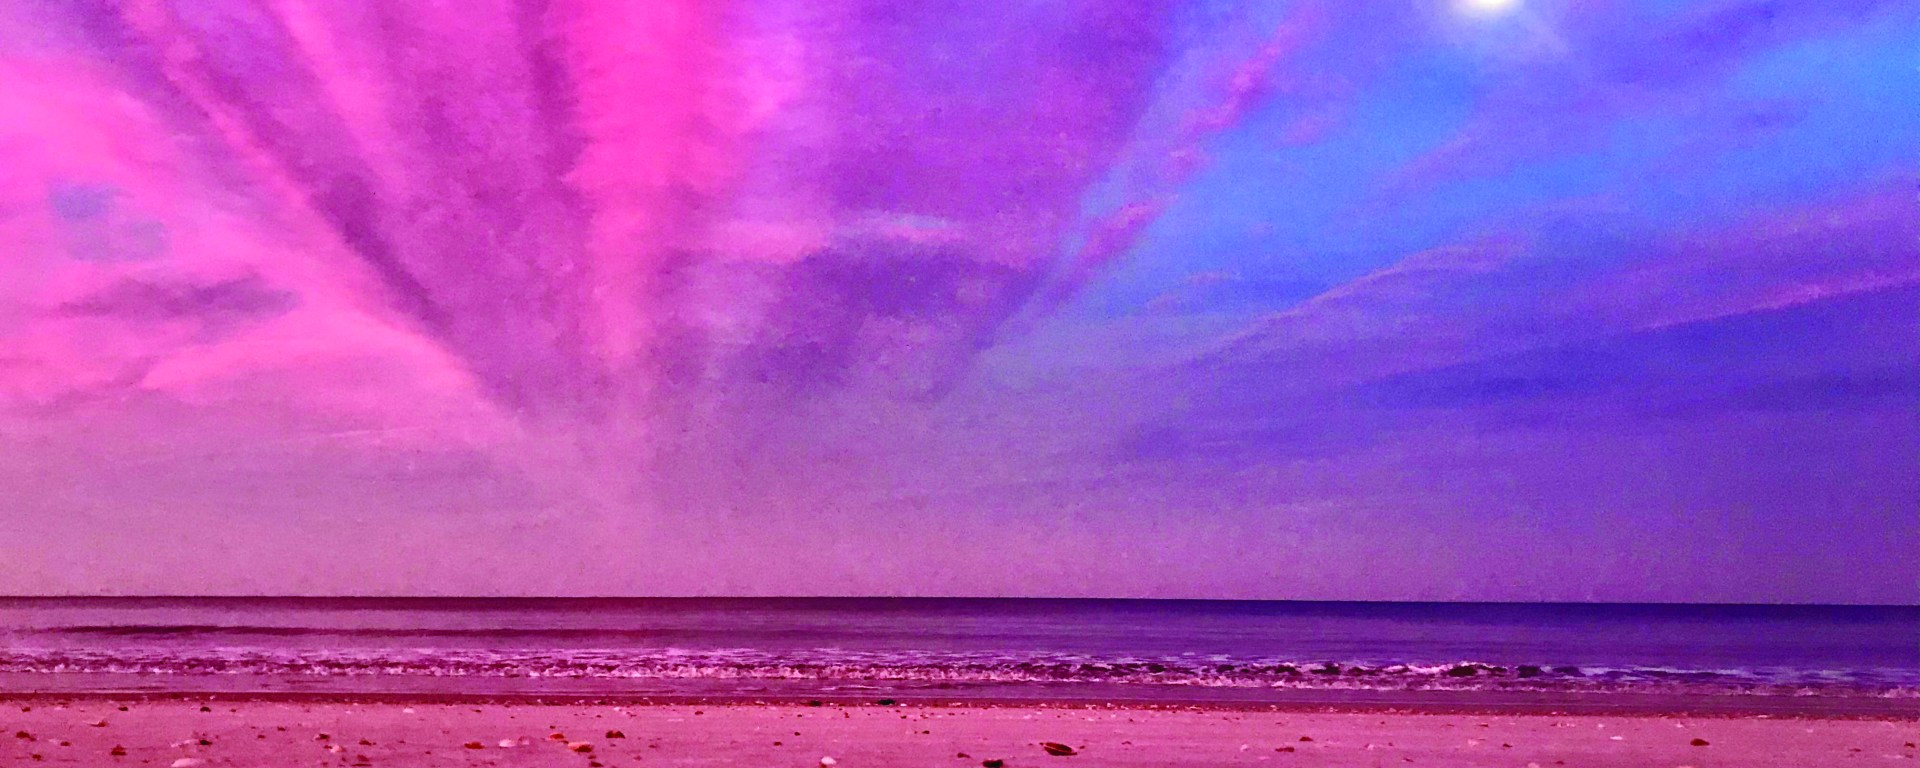 pink and blue skies over a seashell filled beach